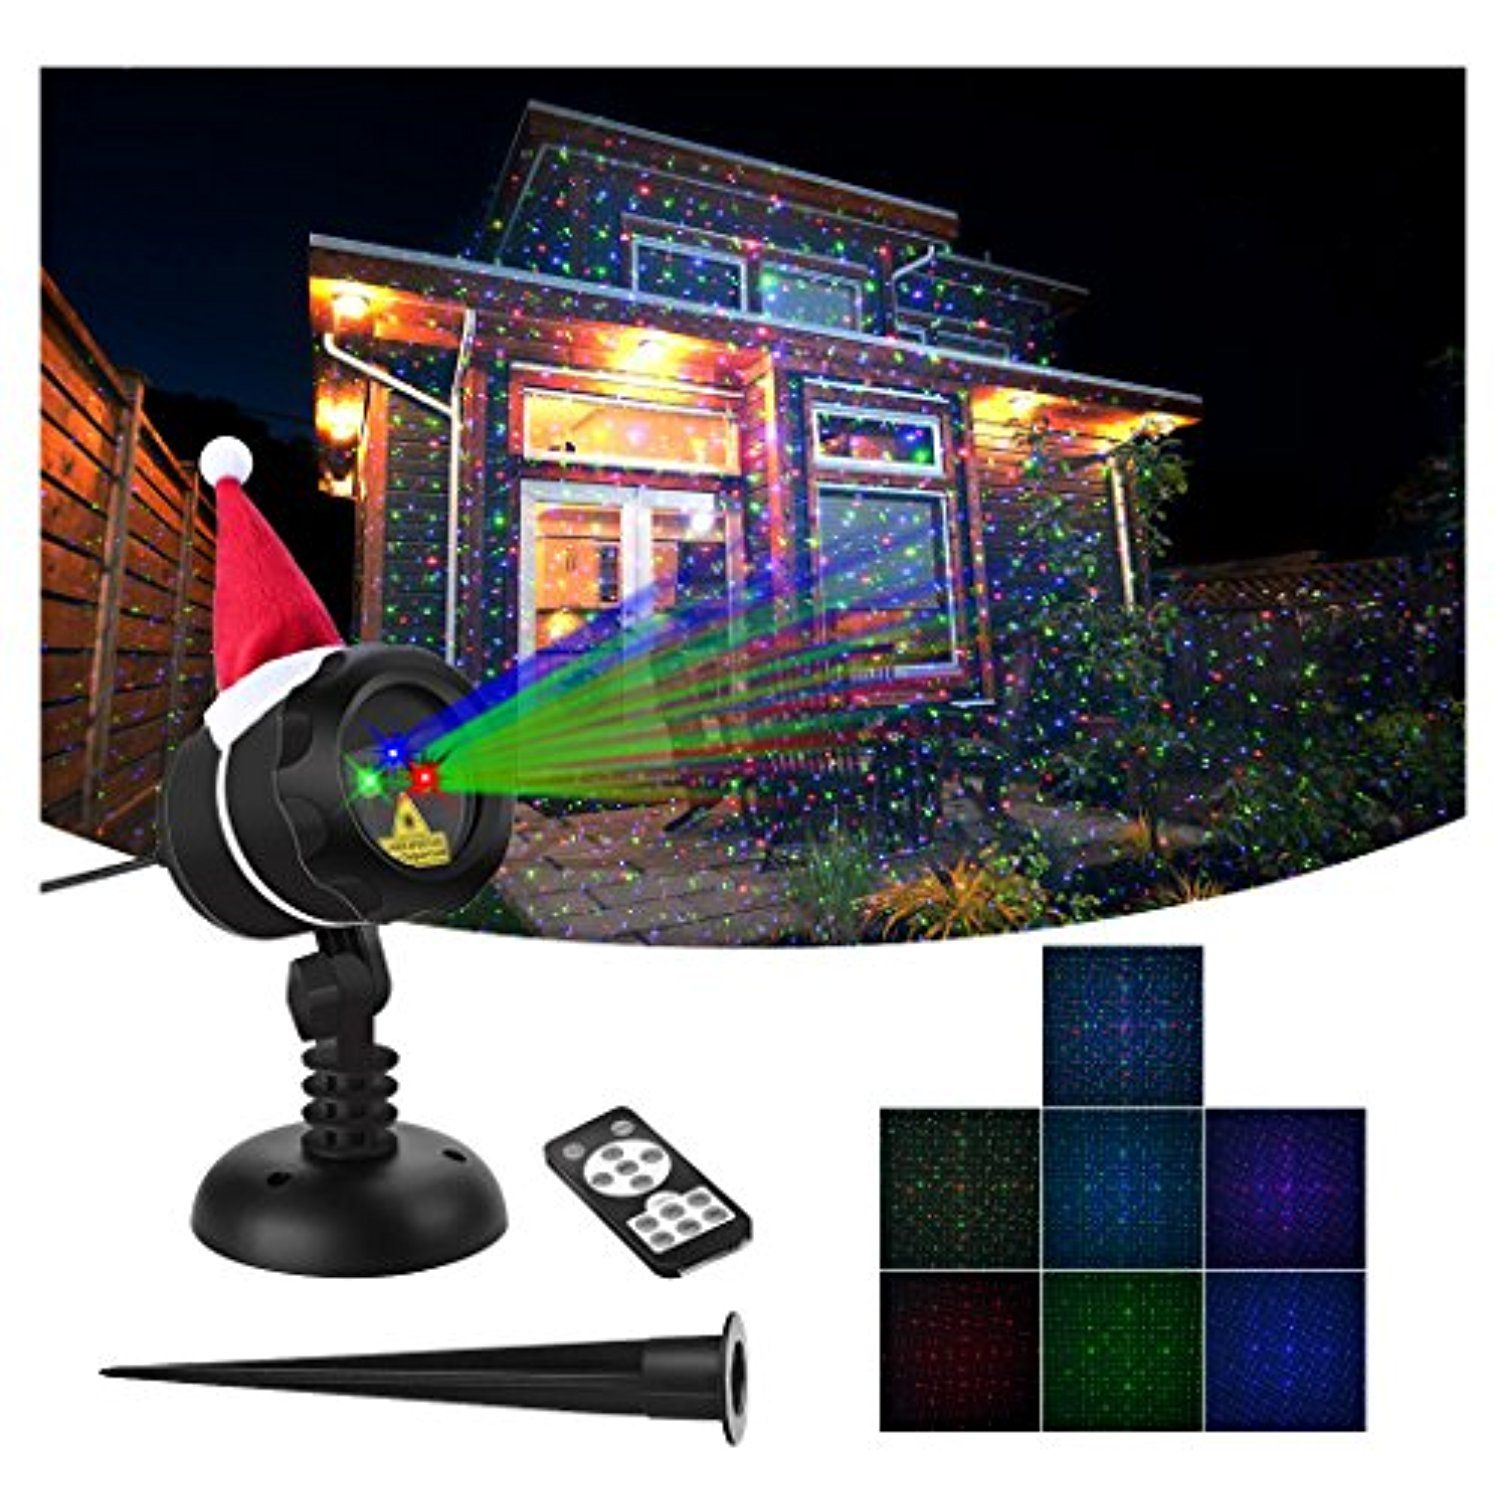 Verkb Christmas Laser Lights Red Green Blue Moving Stars Effect Wireless Remote Control Waterproof Projecto With Images Laser Lights Valentines Day Decorations Red Green